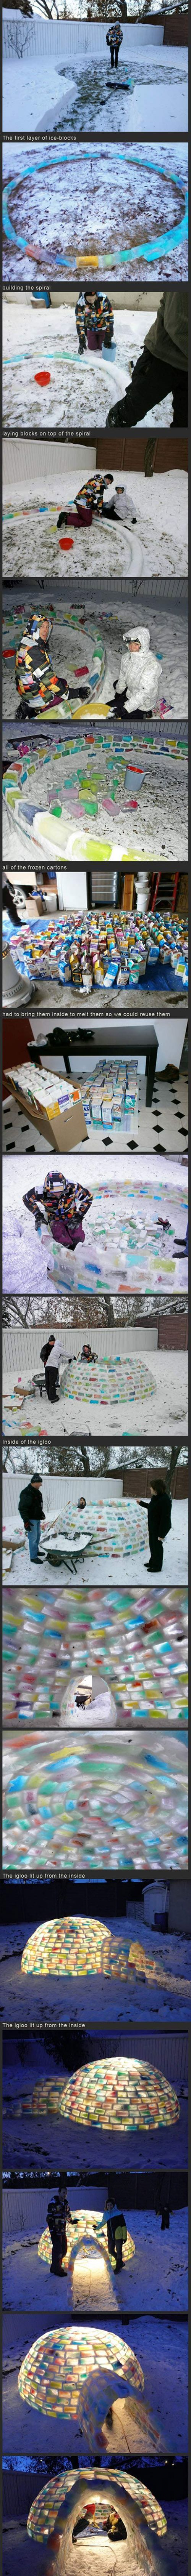 Rainbow igloo I must do this some day!!!!